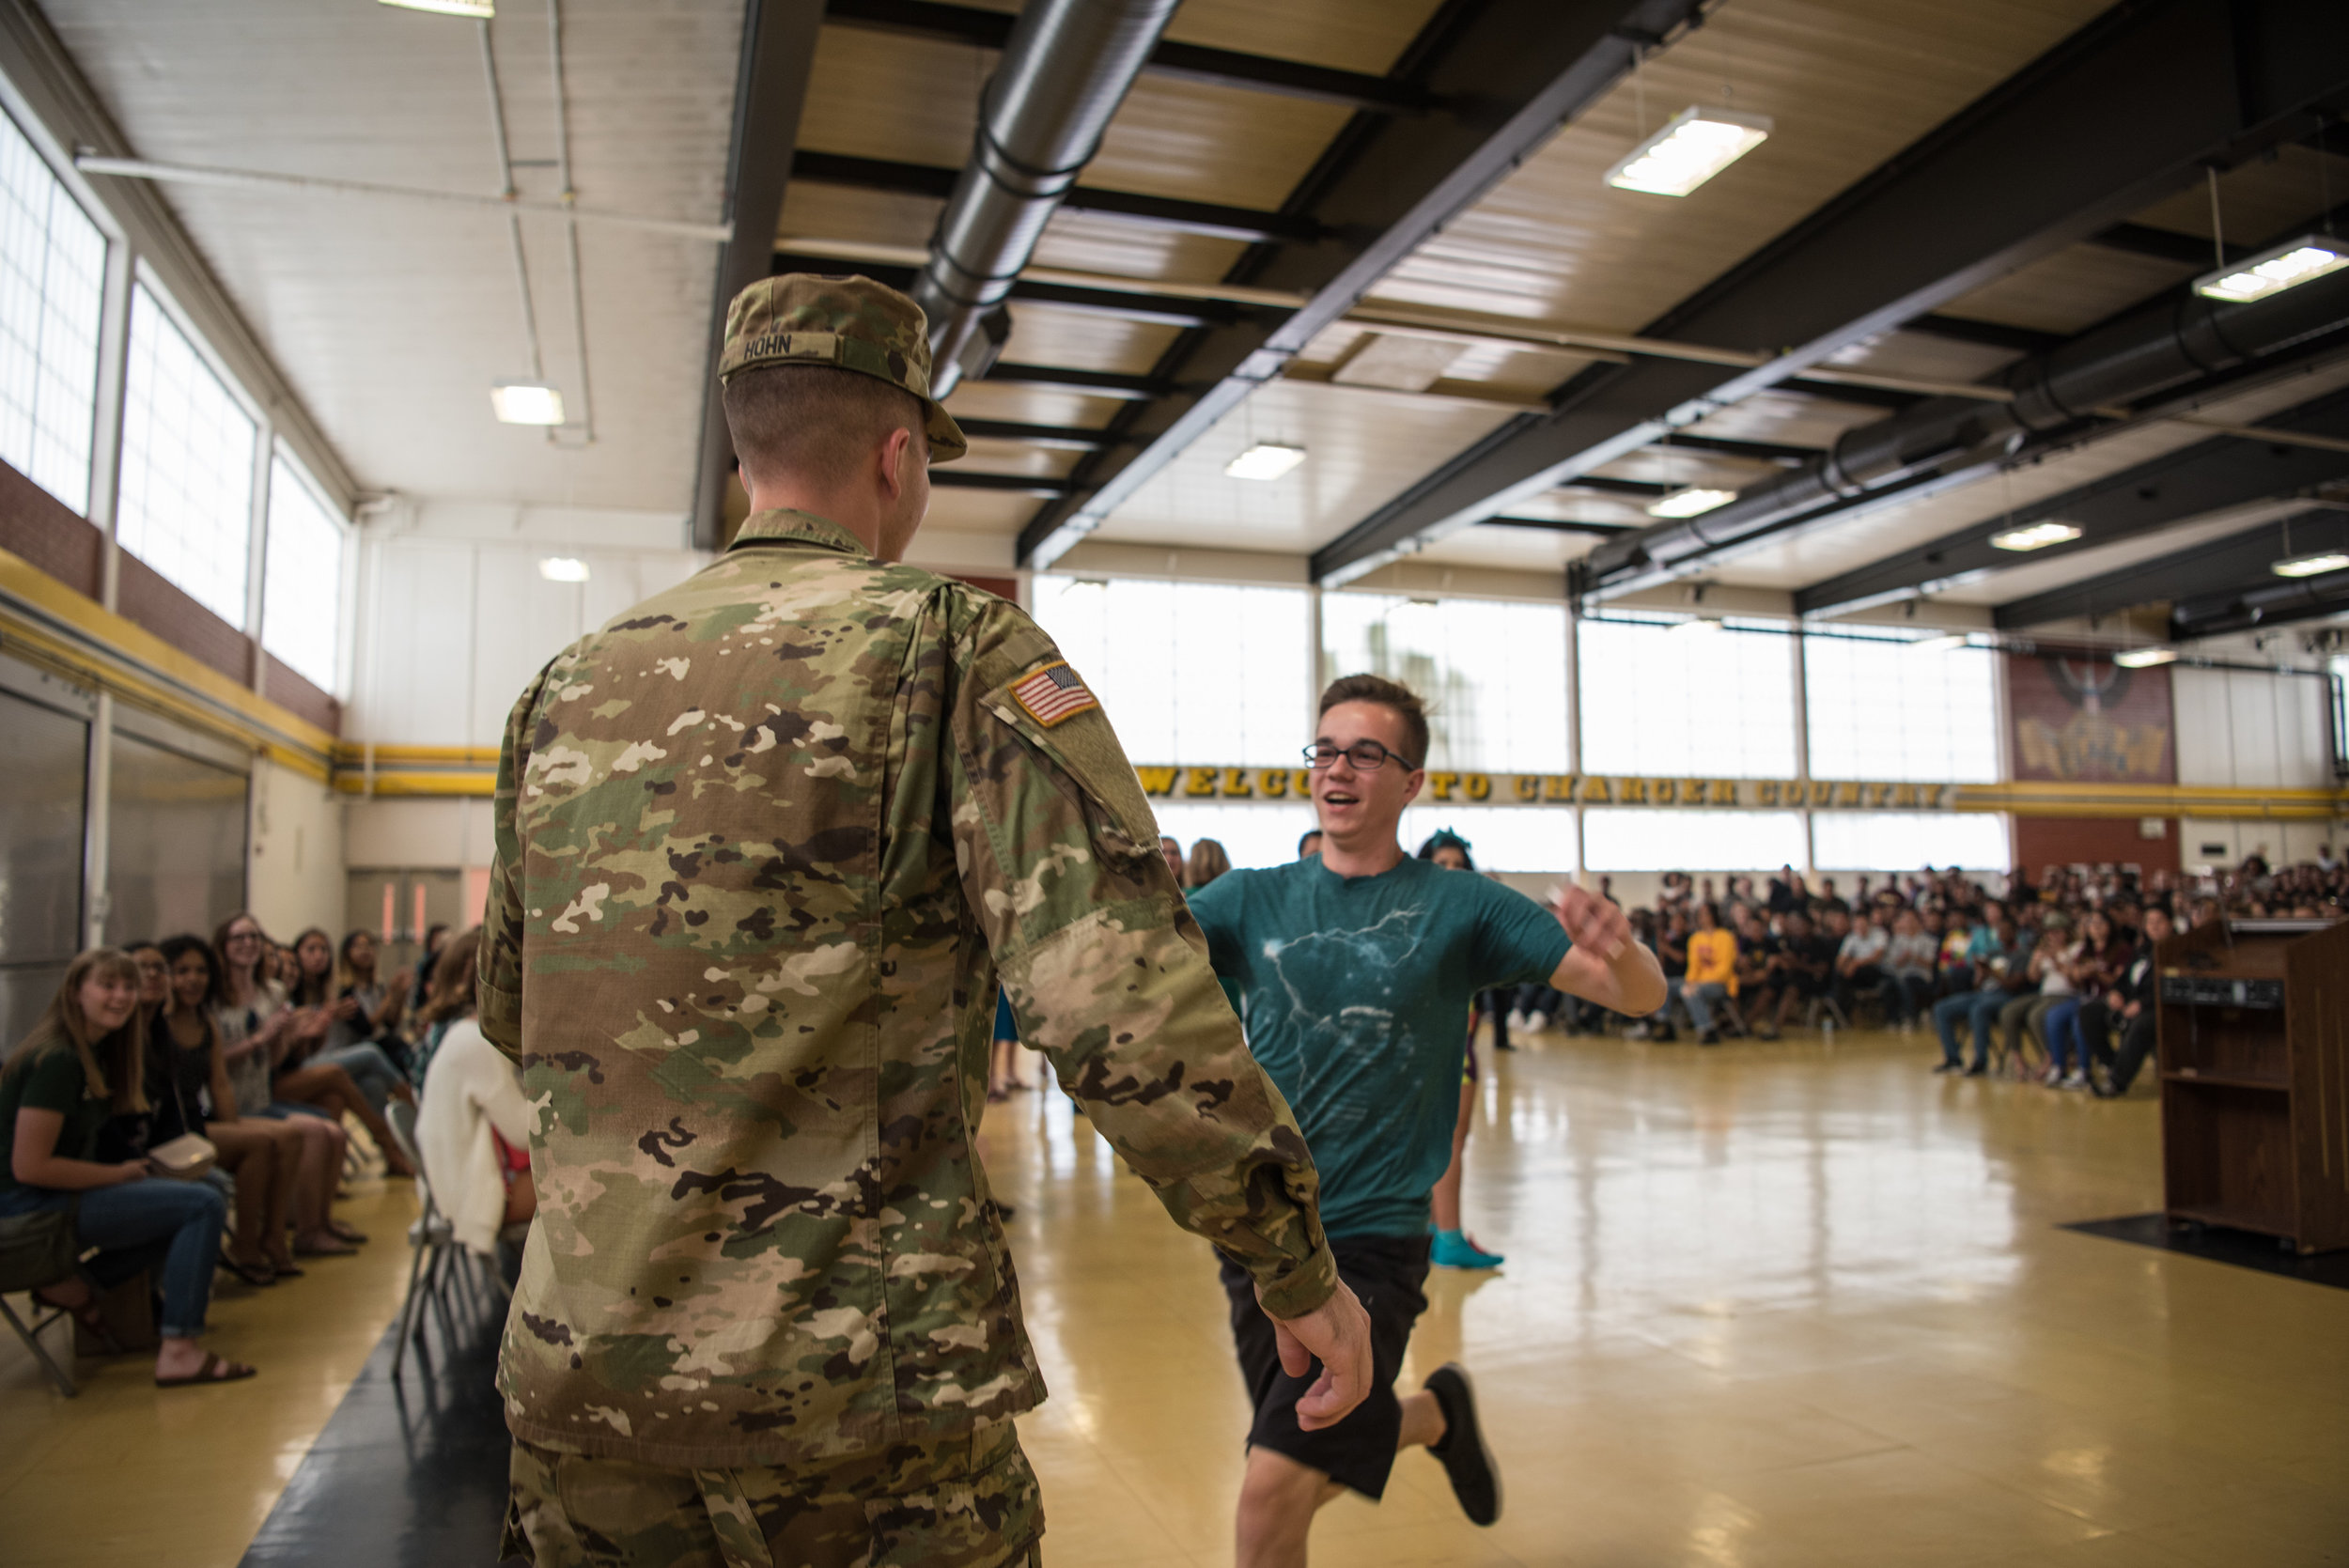 Matthew Hohn runs to embrace his brother, Army Specialist Bradley Hohn, after Bradley planned a homecoming surprise at Matthew's graduation rehearsal on Thursday, June 8, 2017, at Ed W. Clark High School in Las Vegas. Morgan Lieberman Las Vegas Review-Journal